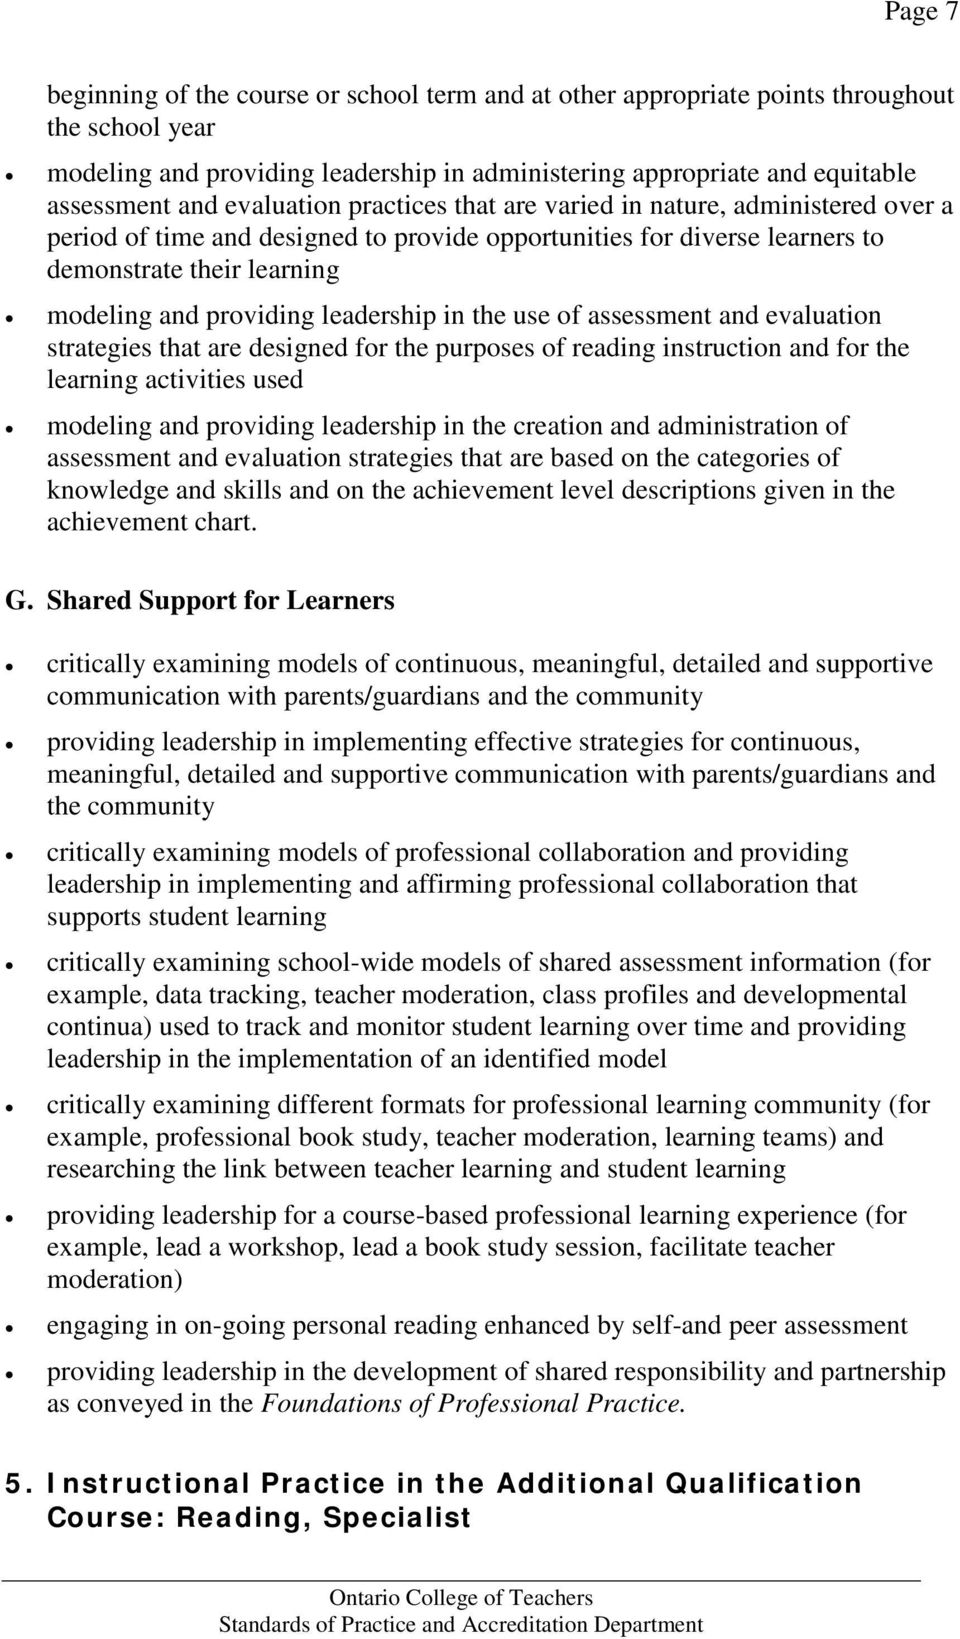 leadership in the use of assessment and evaluation strategies that are designed for the purposes of reading instruction and for the learning activities used modeling and providing leadership in the